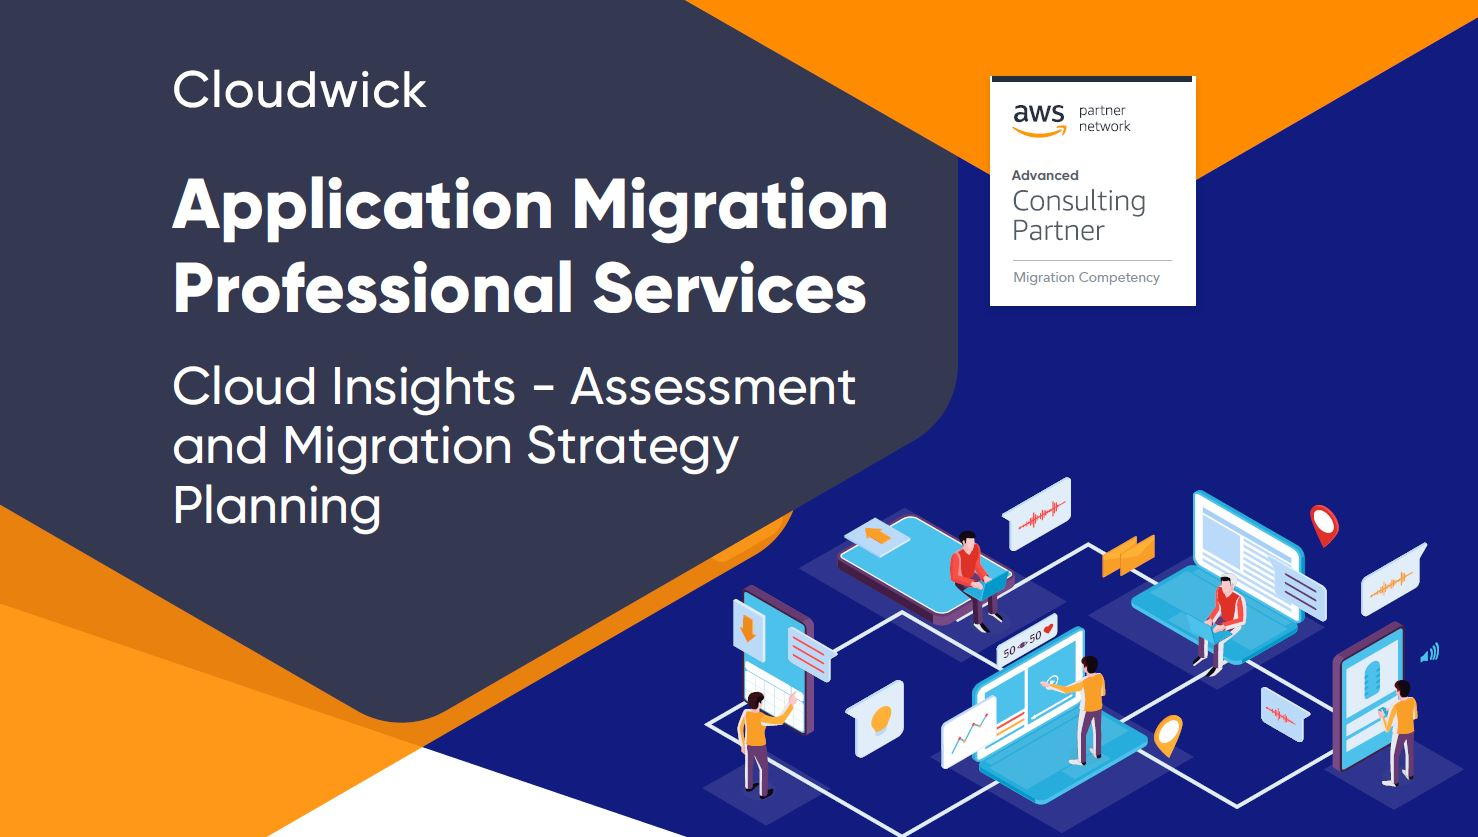 Cloud Insights - Assessment and Migration Strategy Planning